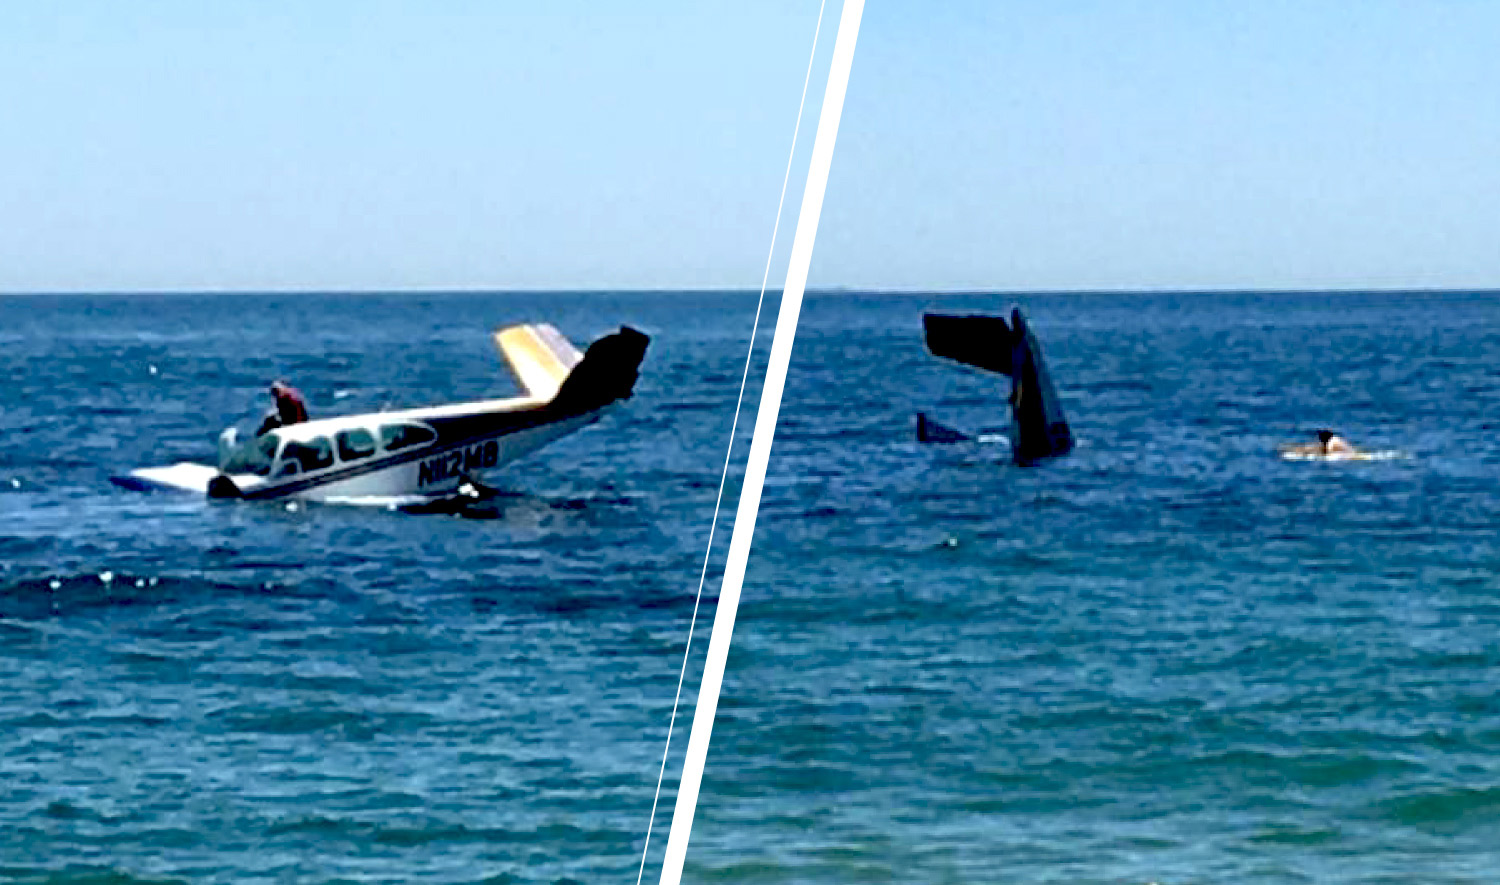 The plane's pilot tried to make it to an airport before ditching in the ocean to avoid beachgoers. He escaped the rapidly sinking plane with minor injuries.